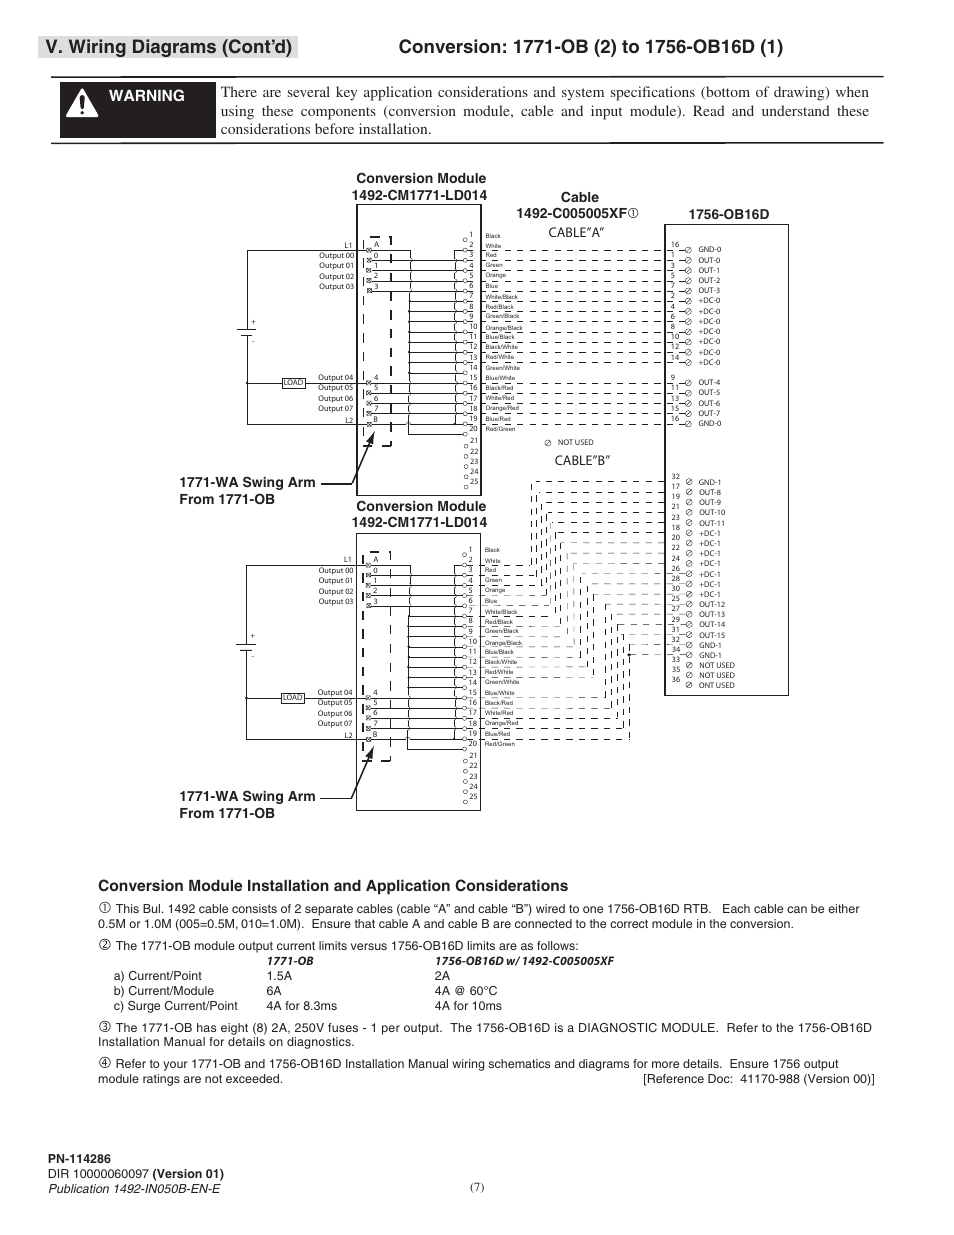 rockwell automation 1492 cm1771 ld0014f field wire conversion module page7 v wiring diagrams (cont'd), cable\u201da\u201d cable\u201db rockwell rockwell automation wiring diagrams at alyssarenee.co